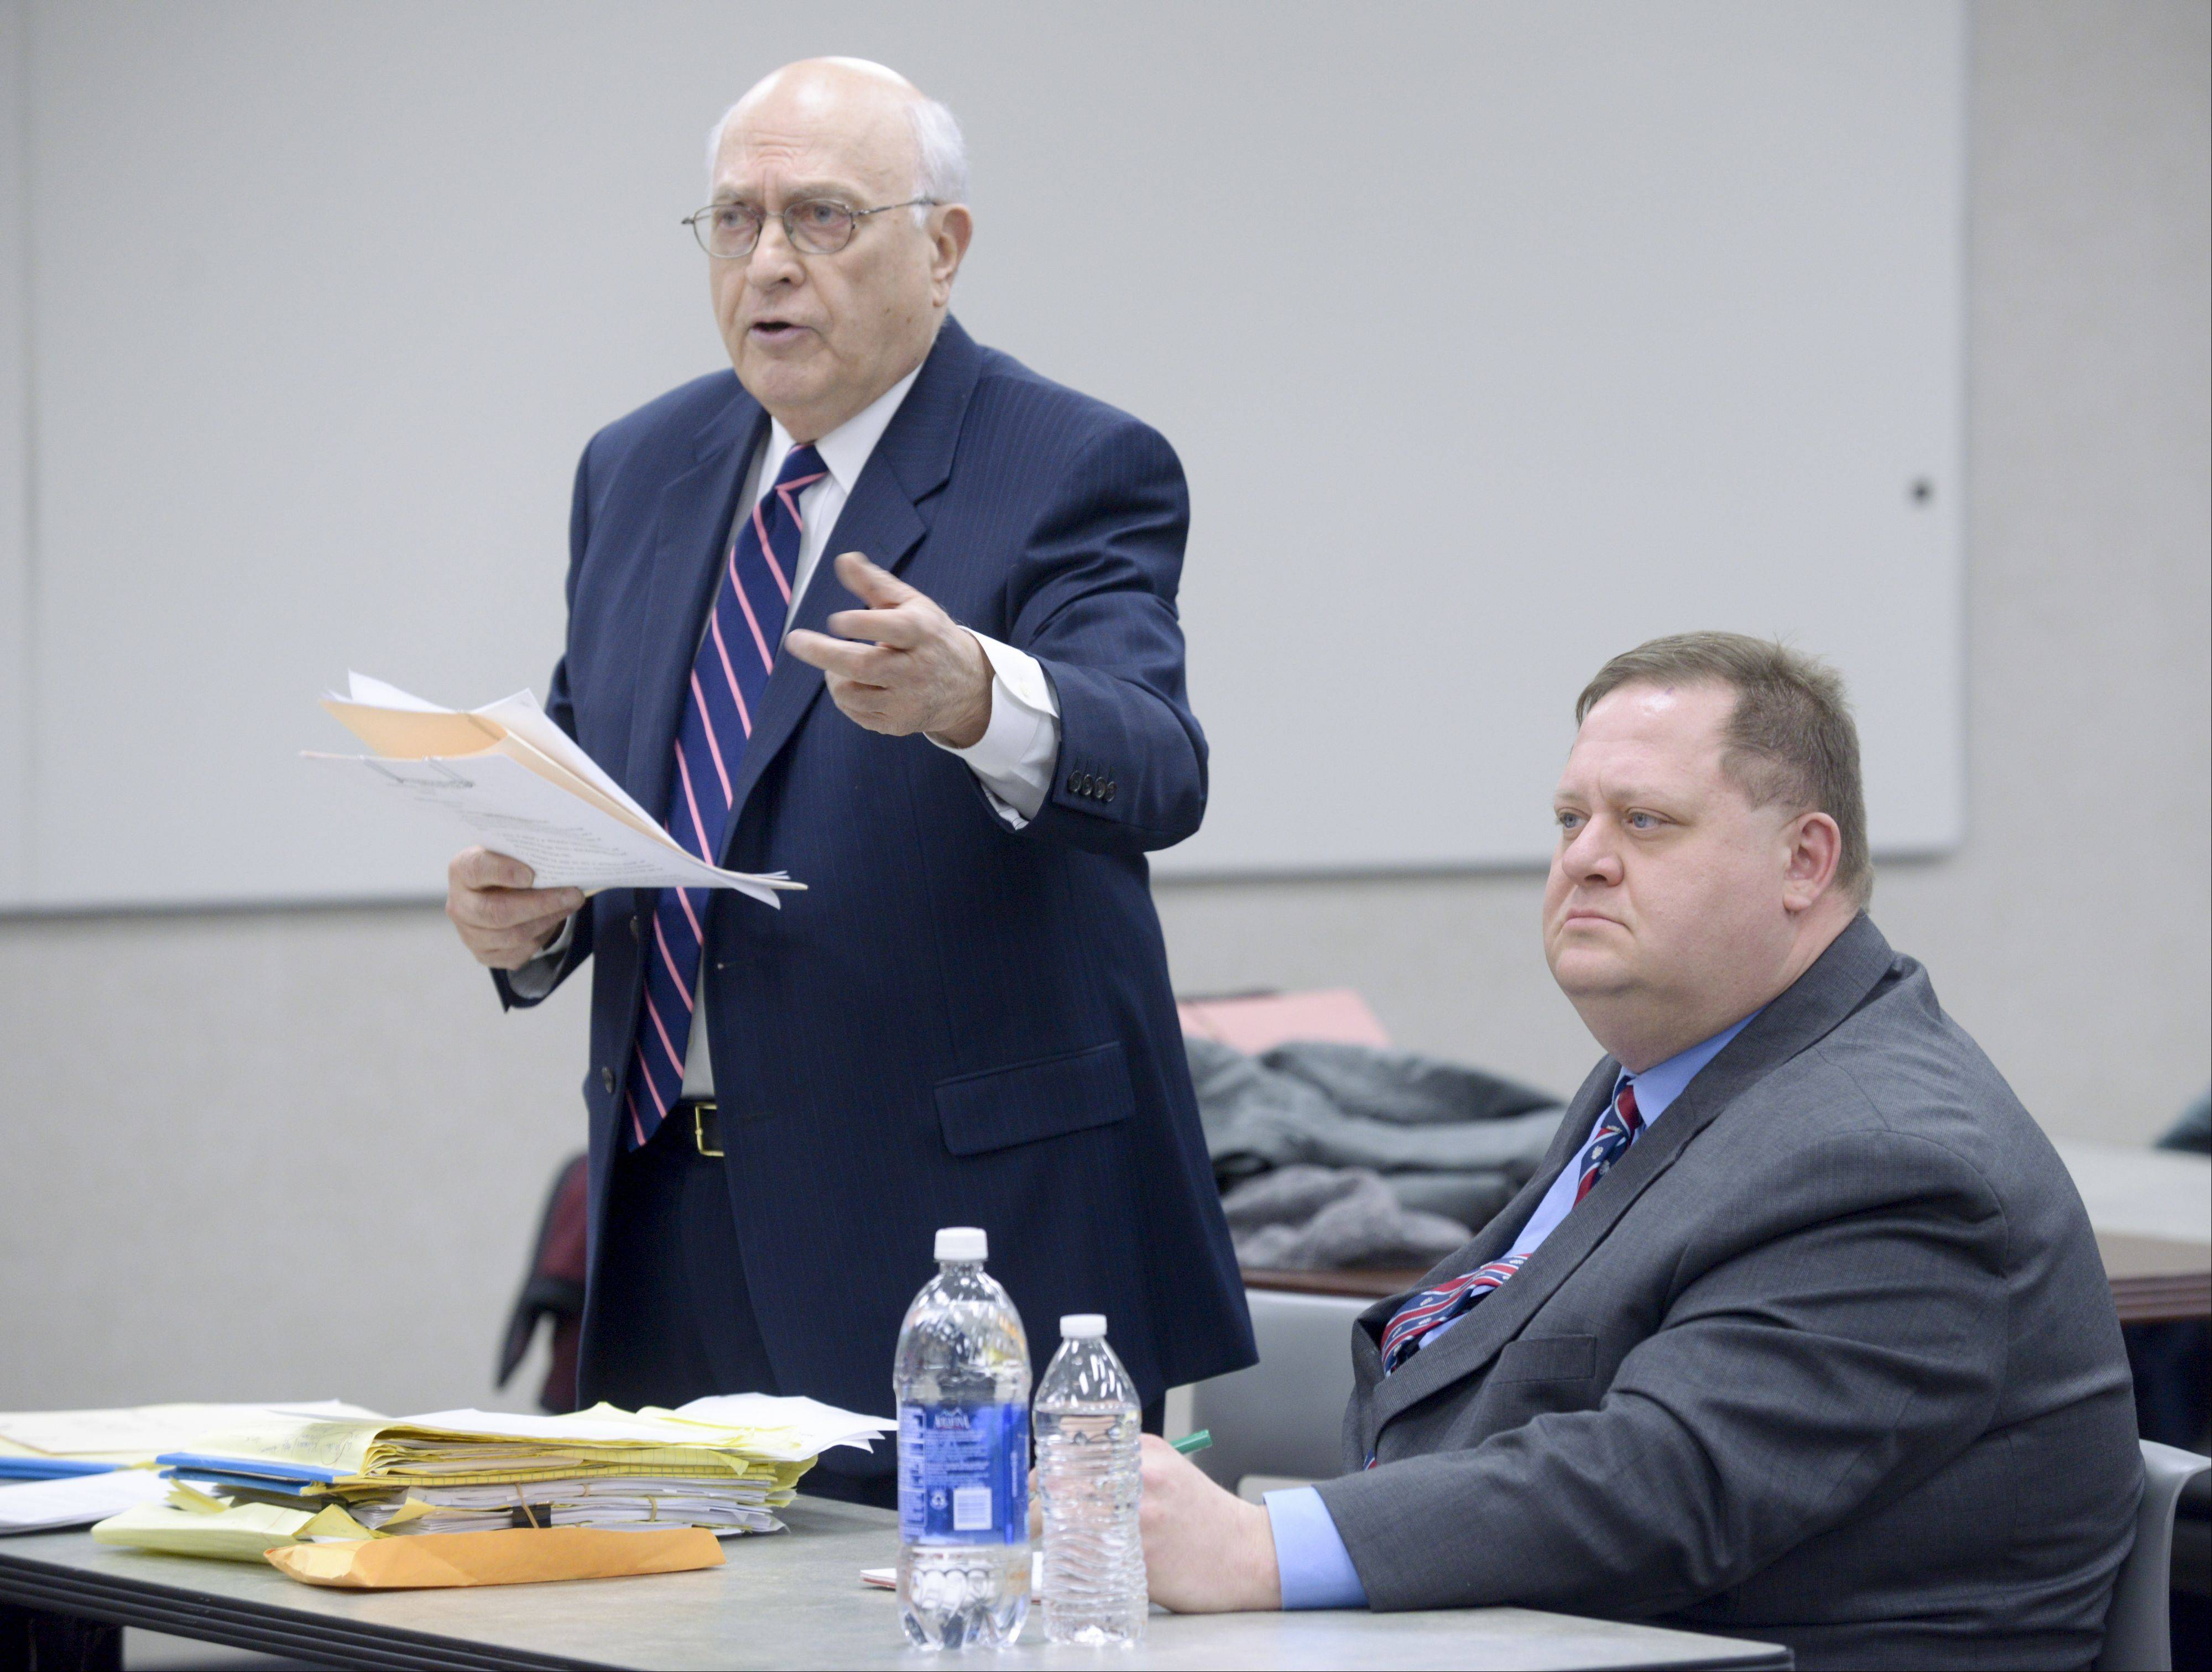 Attorney Aldo Botti speaks during the opening day of the termination hearing for his client, Carol Stream Fire Protection District Battalion Chief Joe Gilles, seated at right.